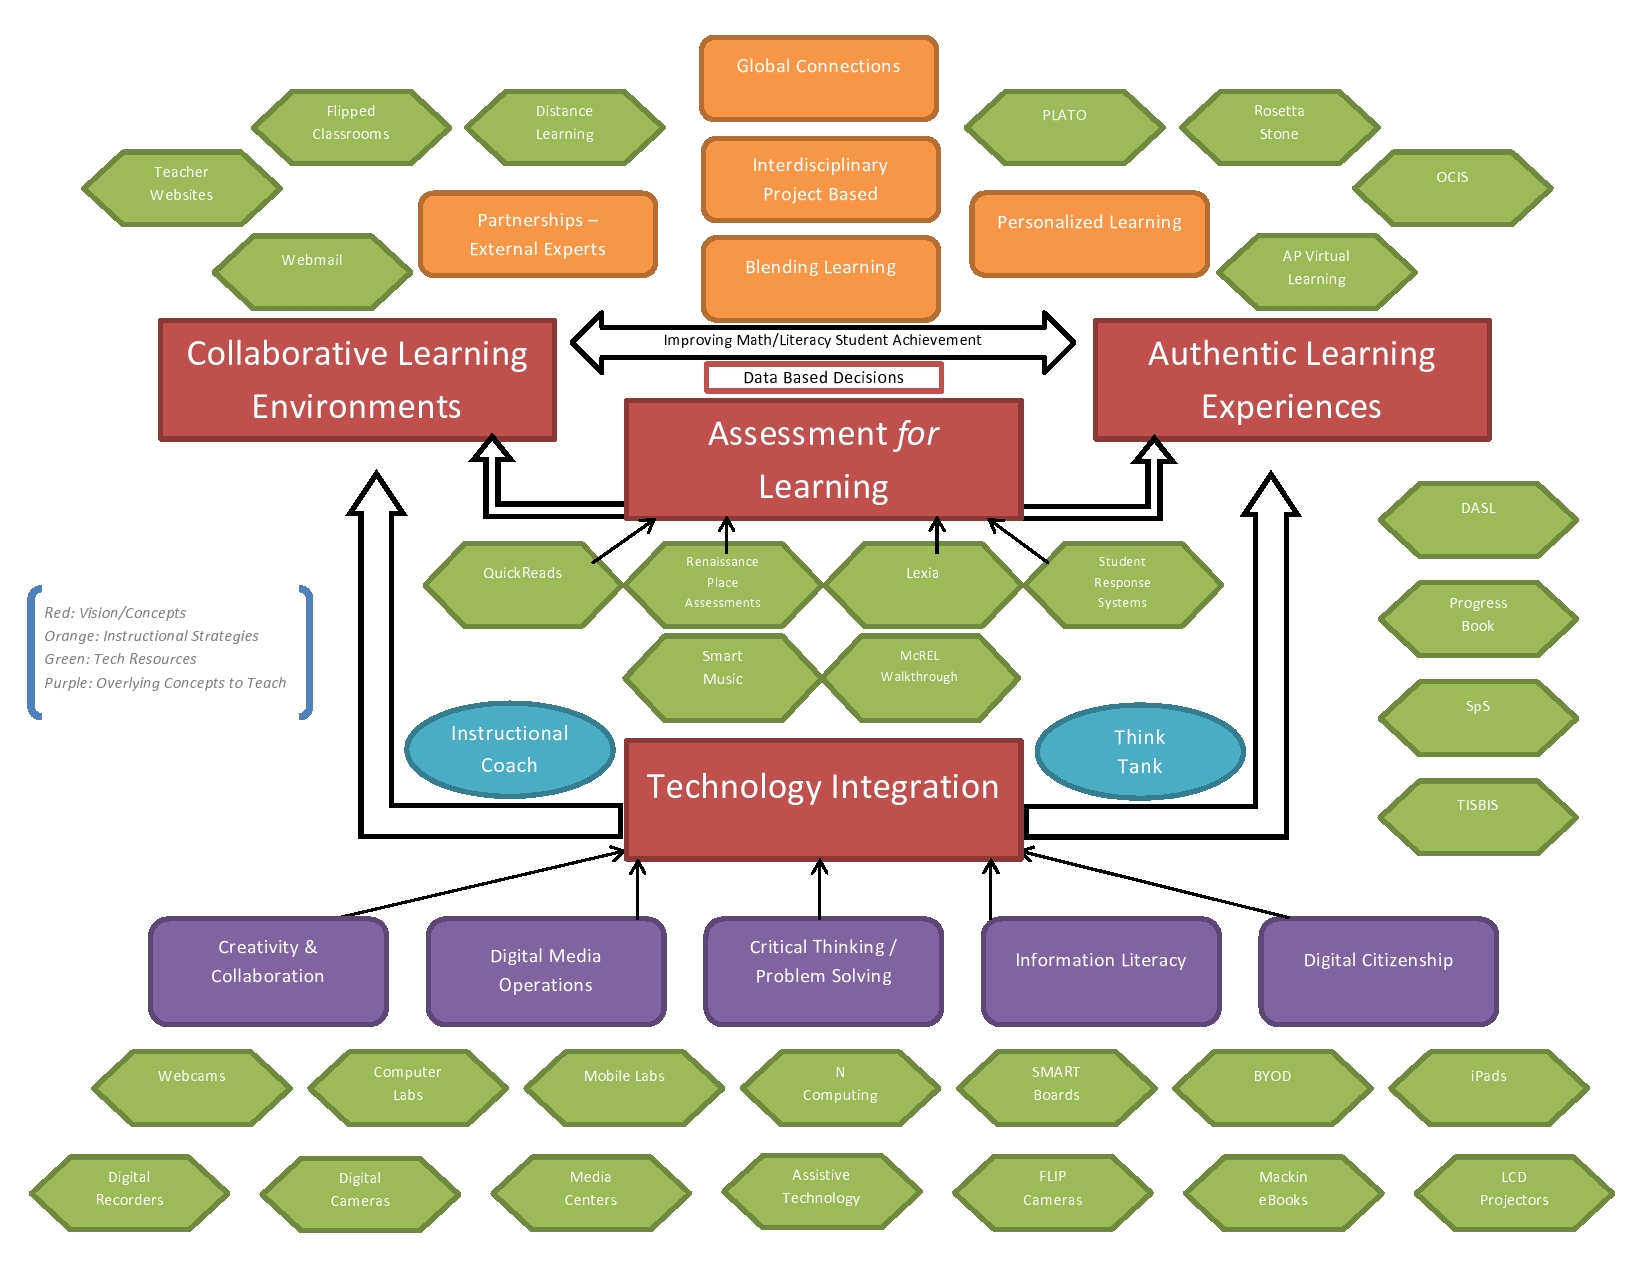 "from school to workforce information literacy critical thinking and problem-solving skills Critical thinking skills and information literacy: tools future geoscientists must possess rich schultz, cpg-10188  critical thinking skills as i write this opinion piece, i am astounded that words such as ""criti-cal thinking"" and ""information literacy."